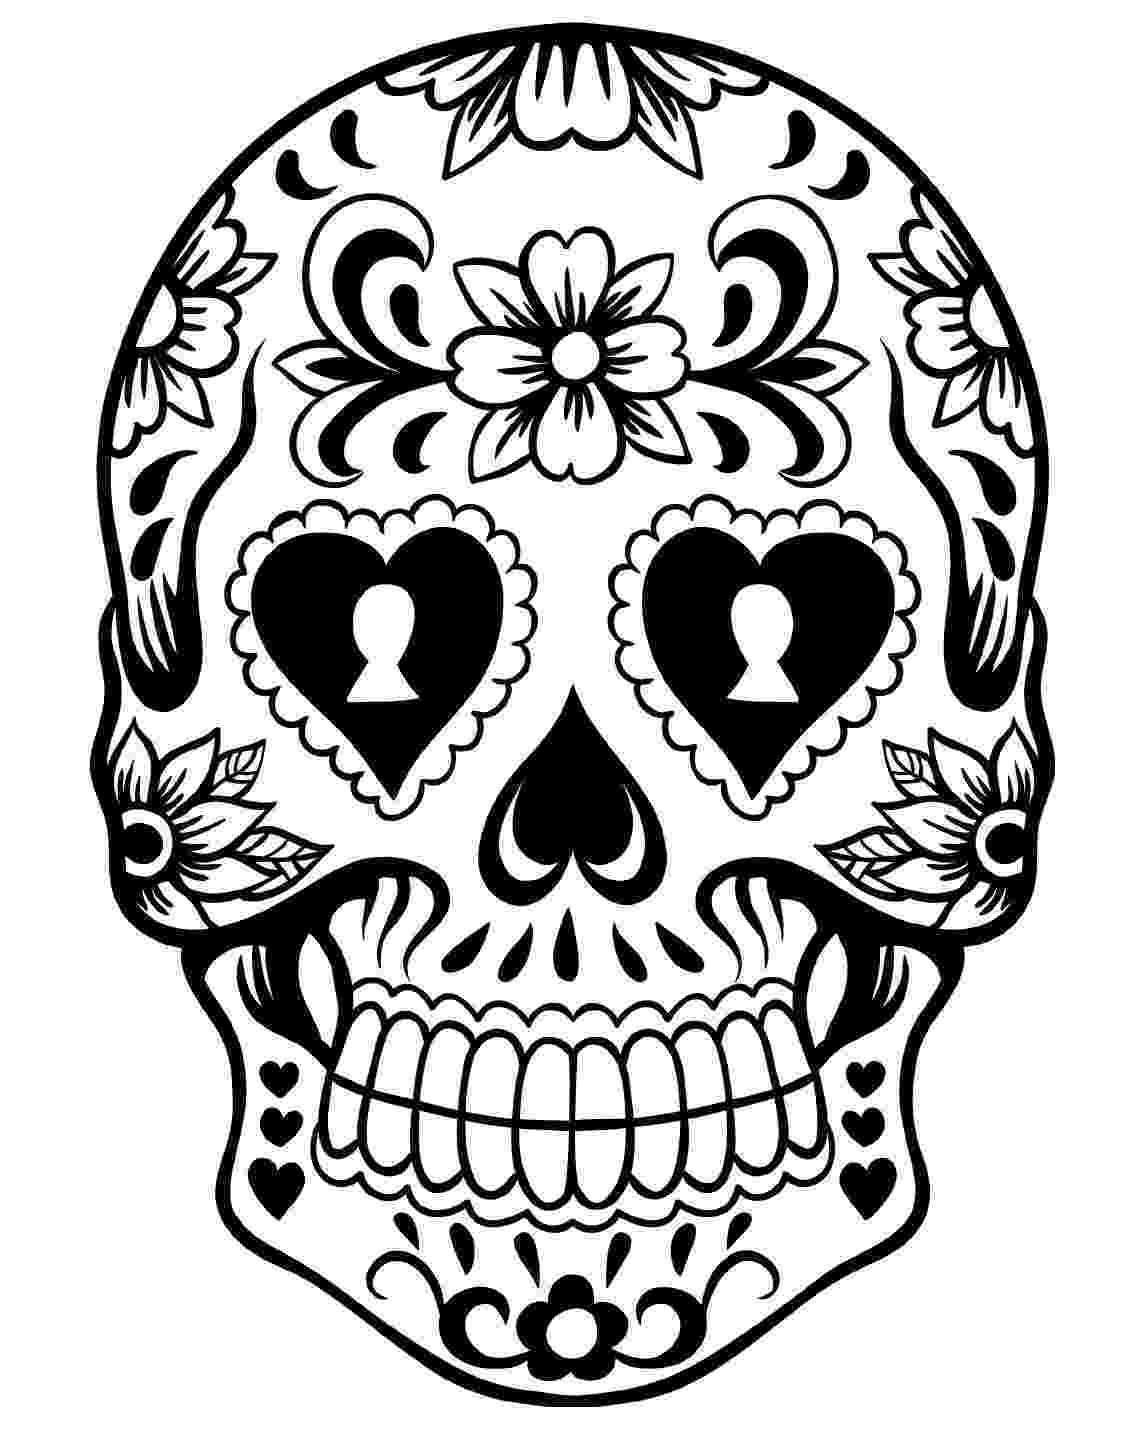 skull coloring sheet free printable day of the dead coloring pages best sheet coloring skull 1 1